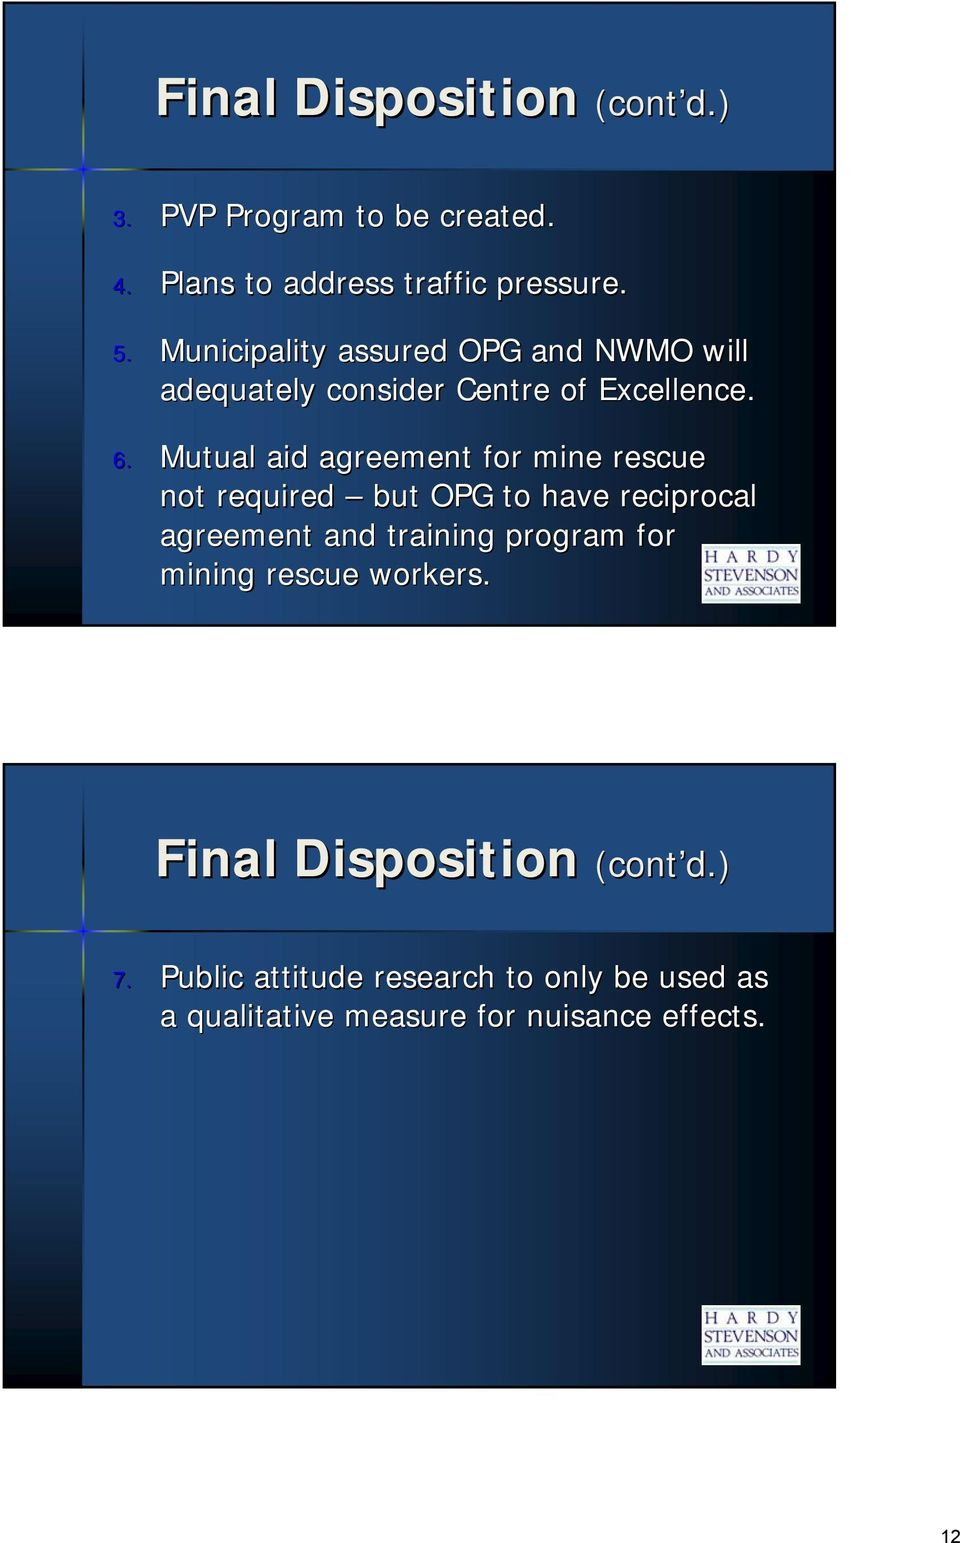 Mutual aid agreement for mine rescue not required but OPG to have reciprocal agreement and training program